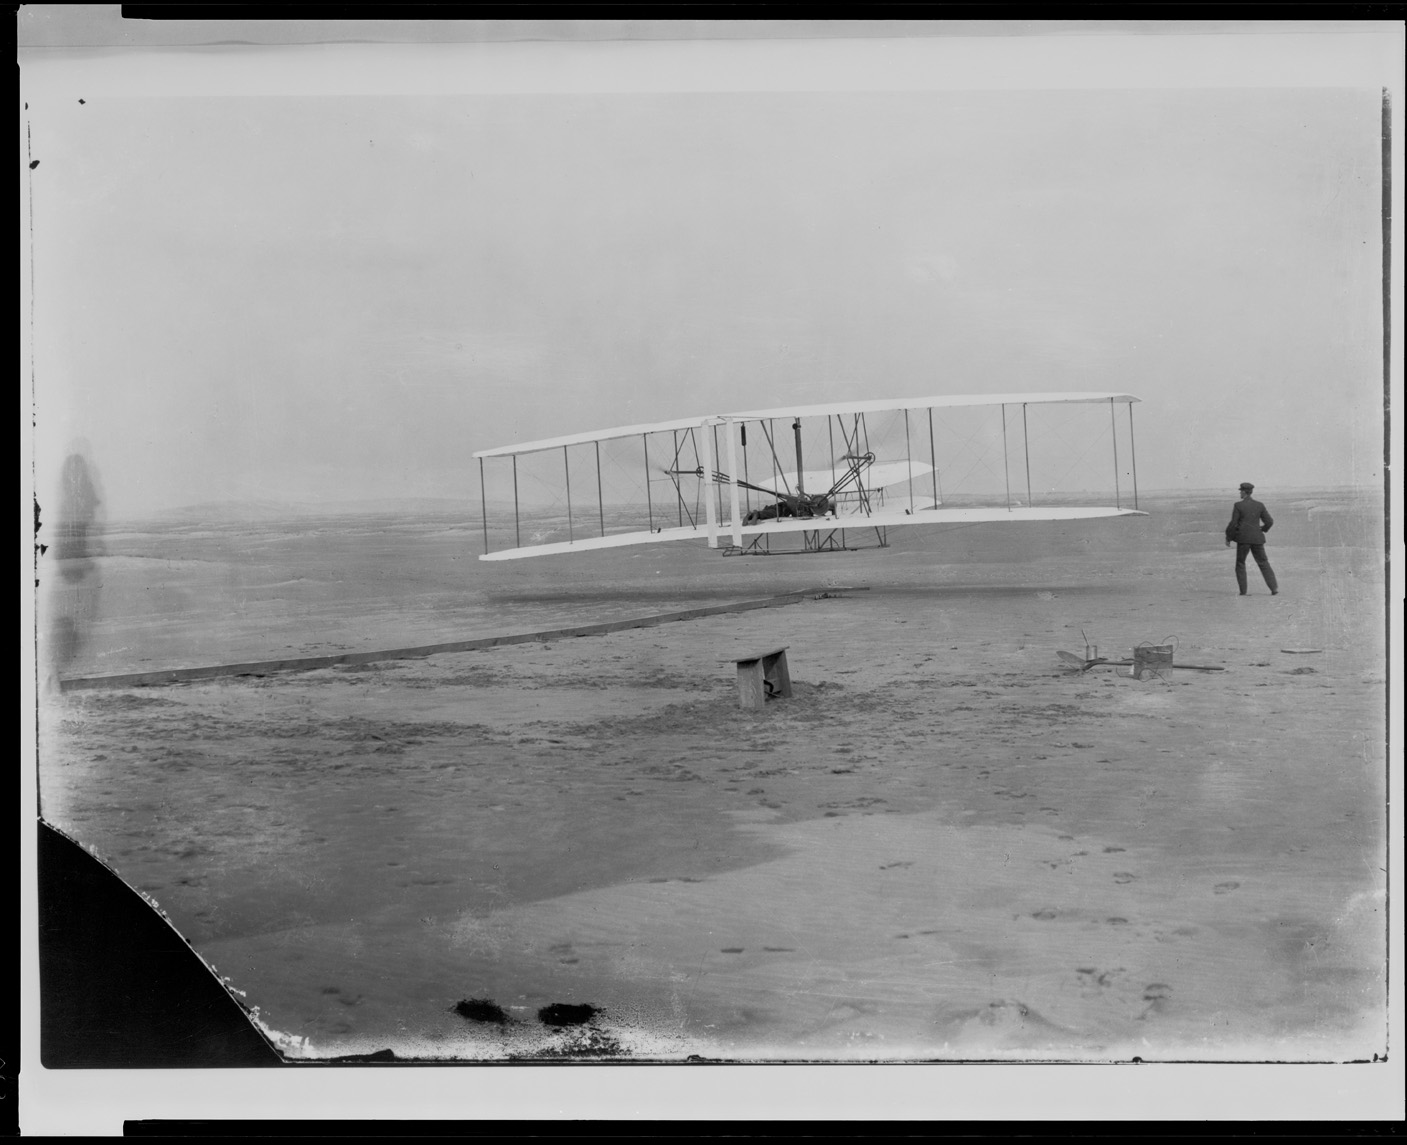 In a black and white photograph, a biplane is shown with two wings stacked on each other. A small engine is seen along with a small body of the plane behind the wings. The plane is on a beach and a man stands watching it, near a wooden bench.